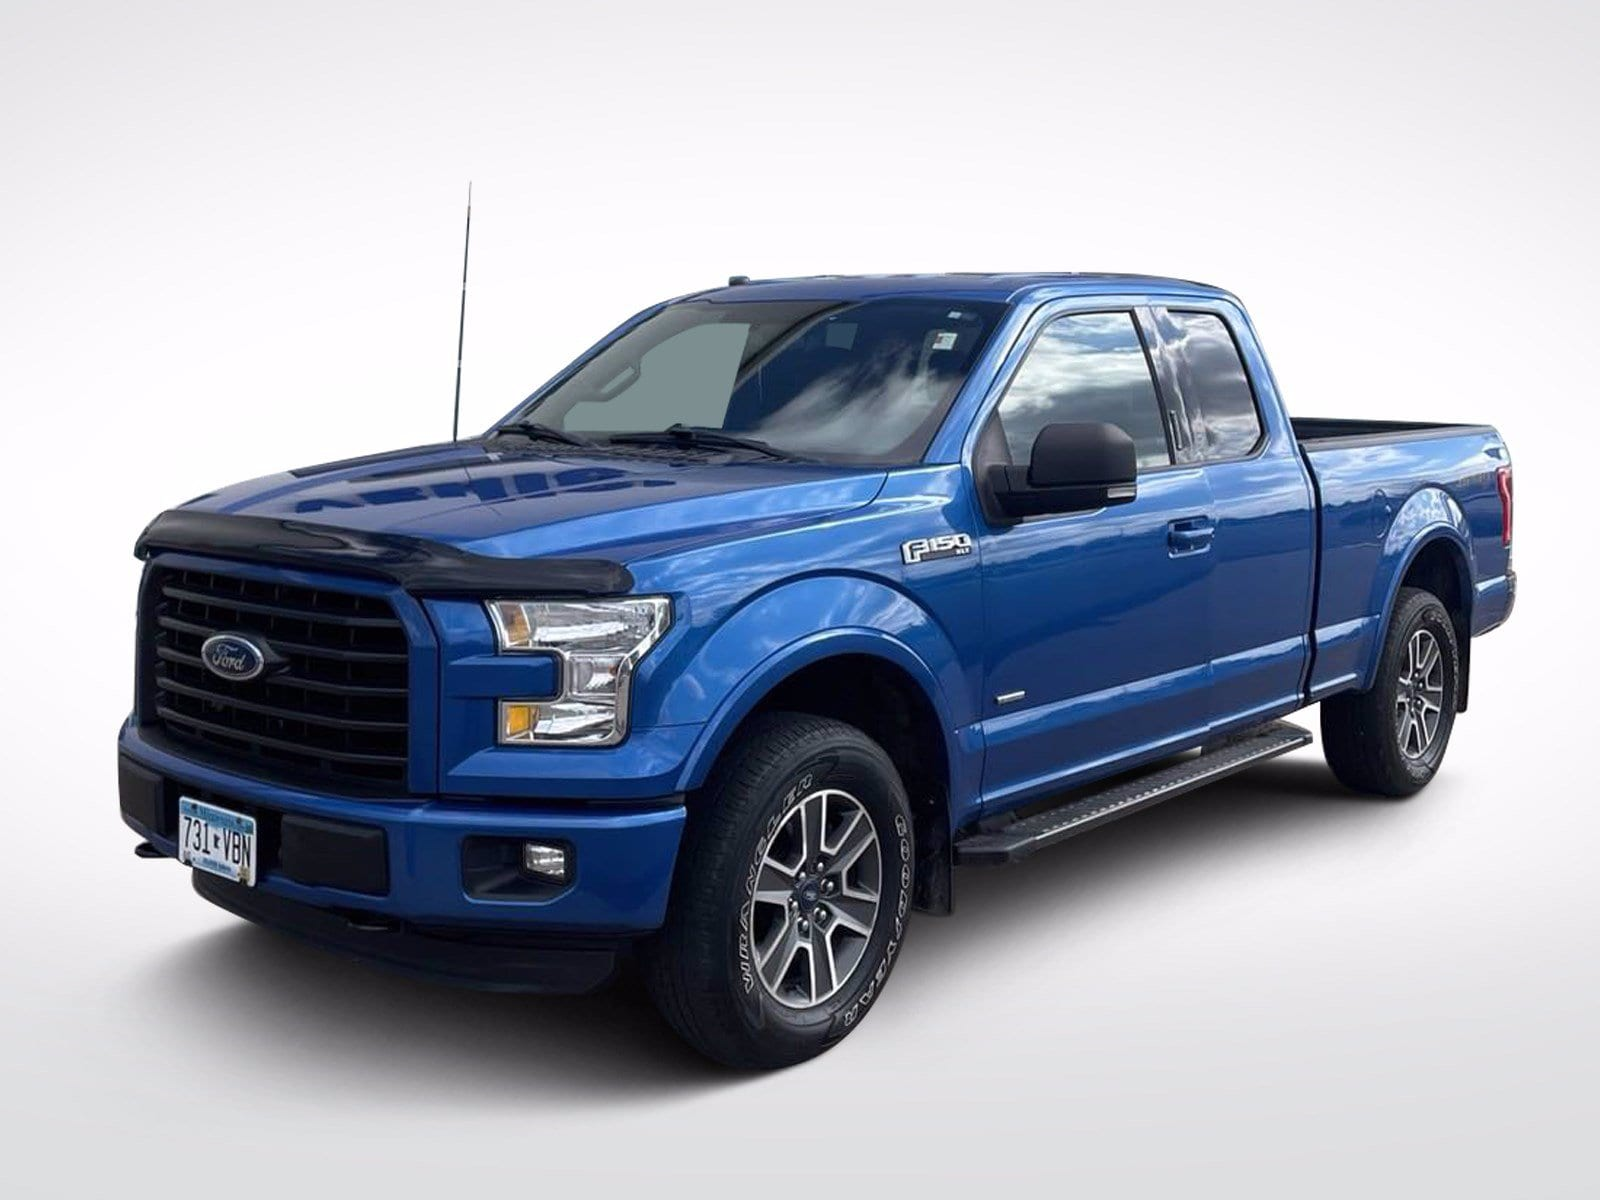 Used 2016 Ford F-150 Lariat with VIN 1FTEX1EP3GKF11794 for sale in Baxter, Minnesota